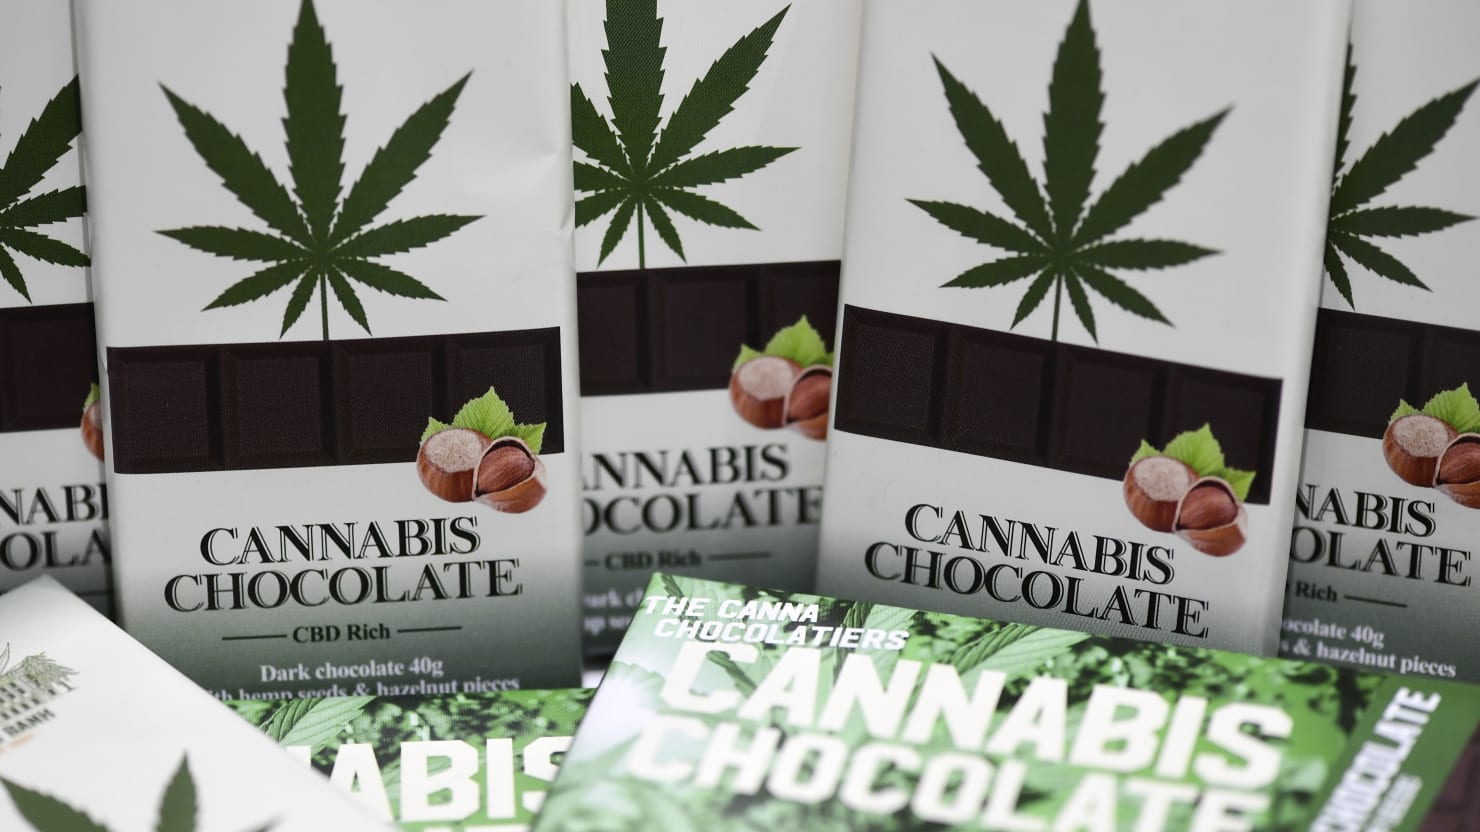 Man With Stage 3 Cancer Gets Four Years in Prison for Buying Marijuana-Infused Chocolate